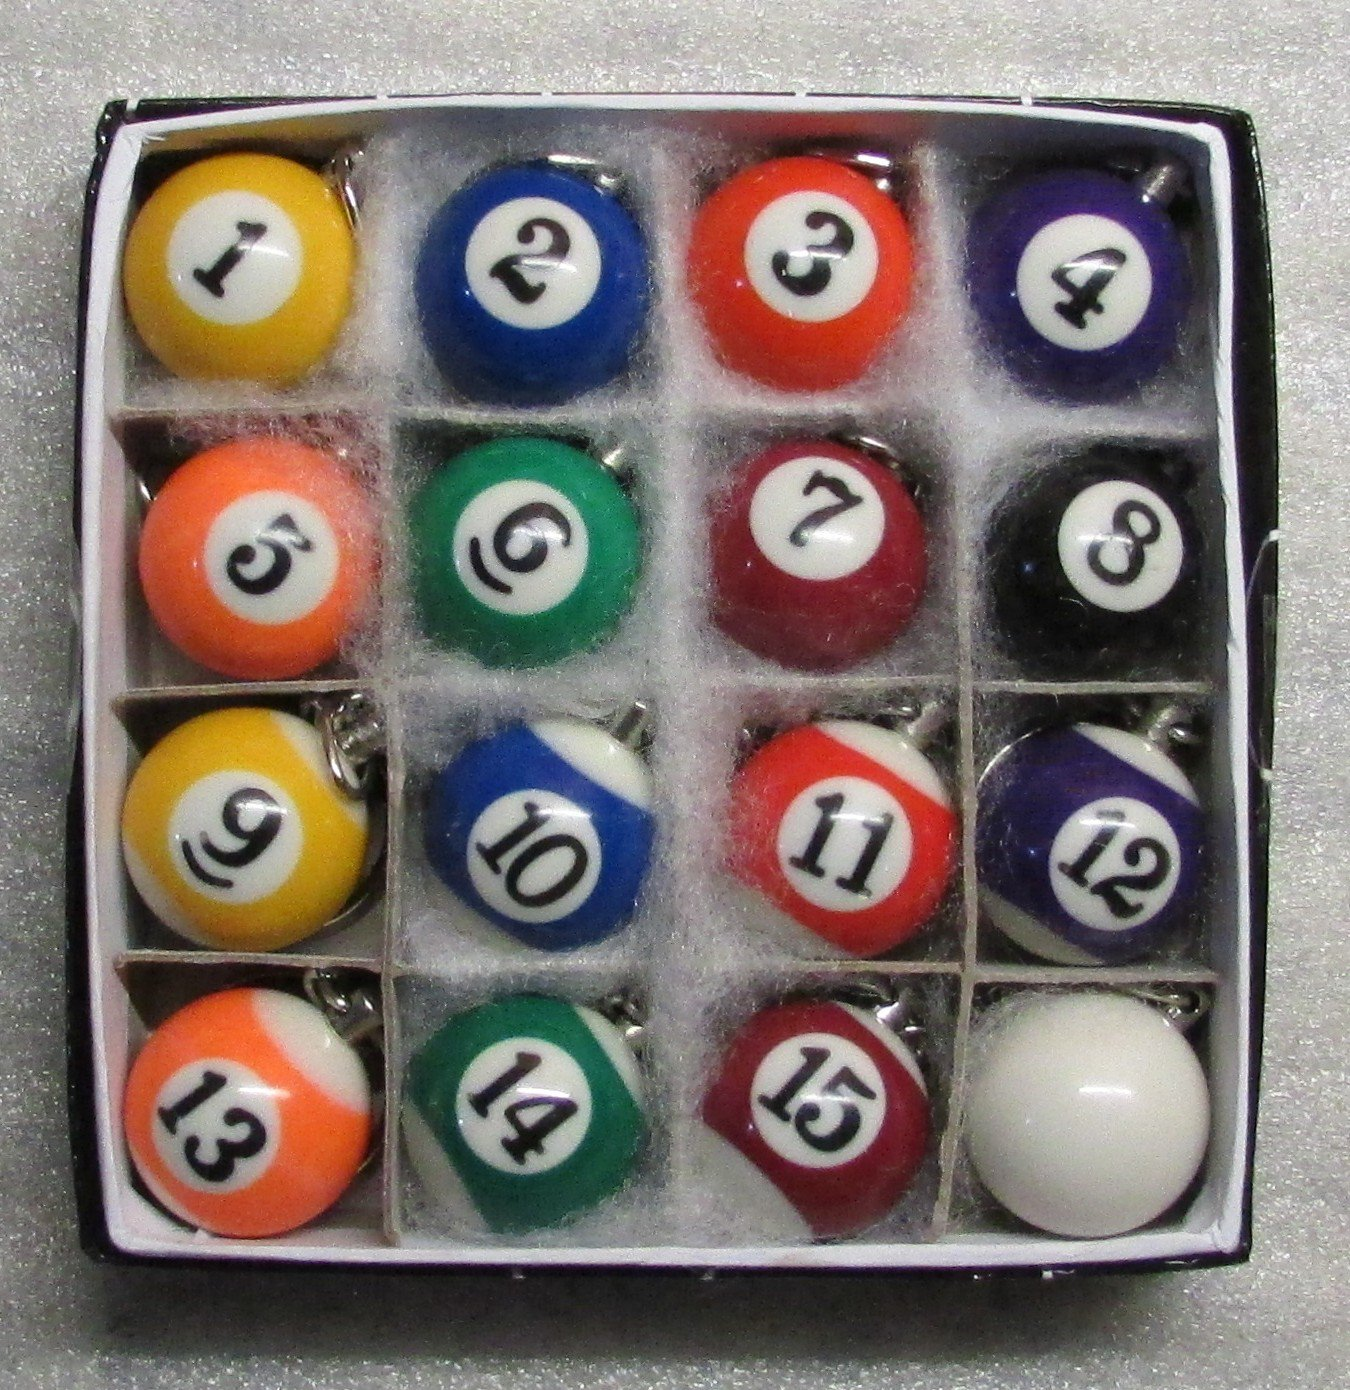 1 Inch w CUE Que Box of 16 Mini Billiard POOL BALL Snooker KEY CHAIN Ring Keychains NEW